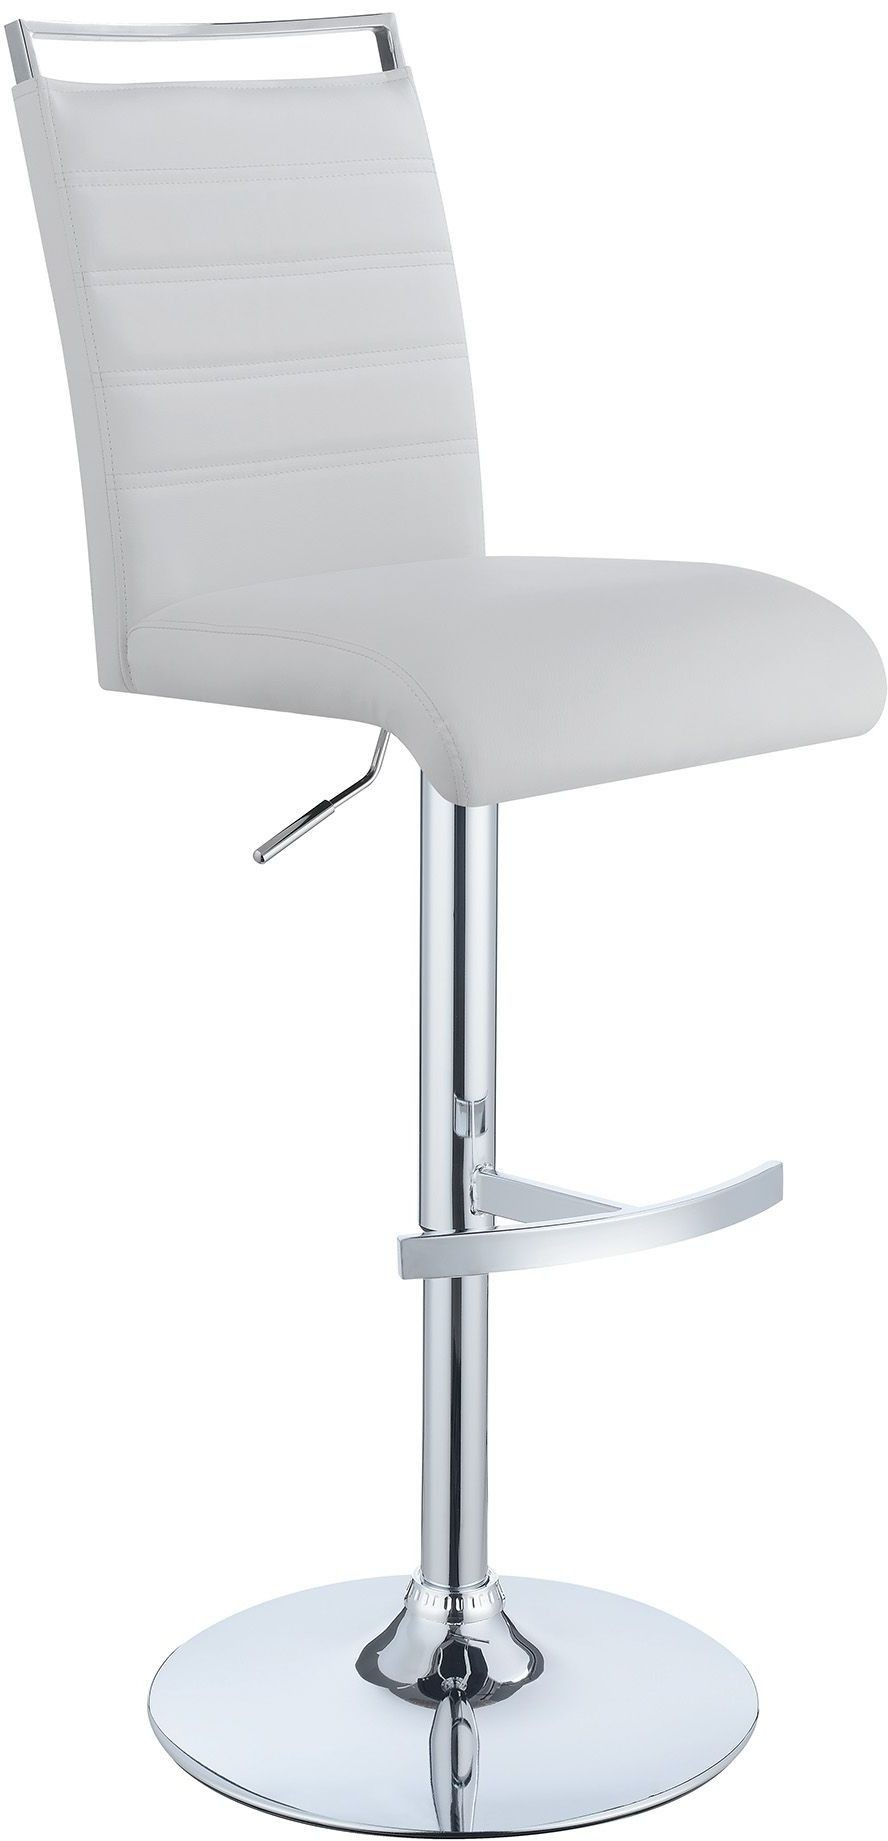 101146 Chrome Adjustable Bar Stool Set Of 2 From Coaster